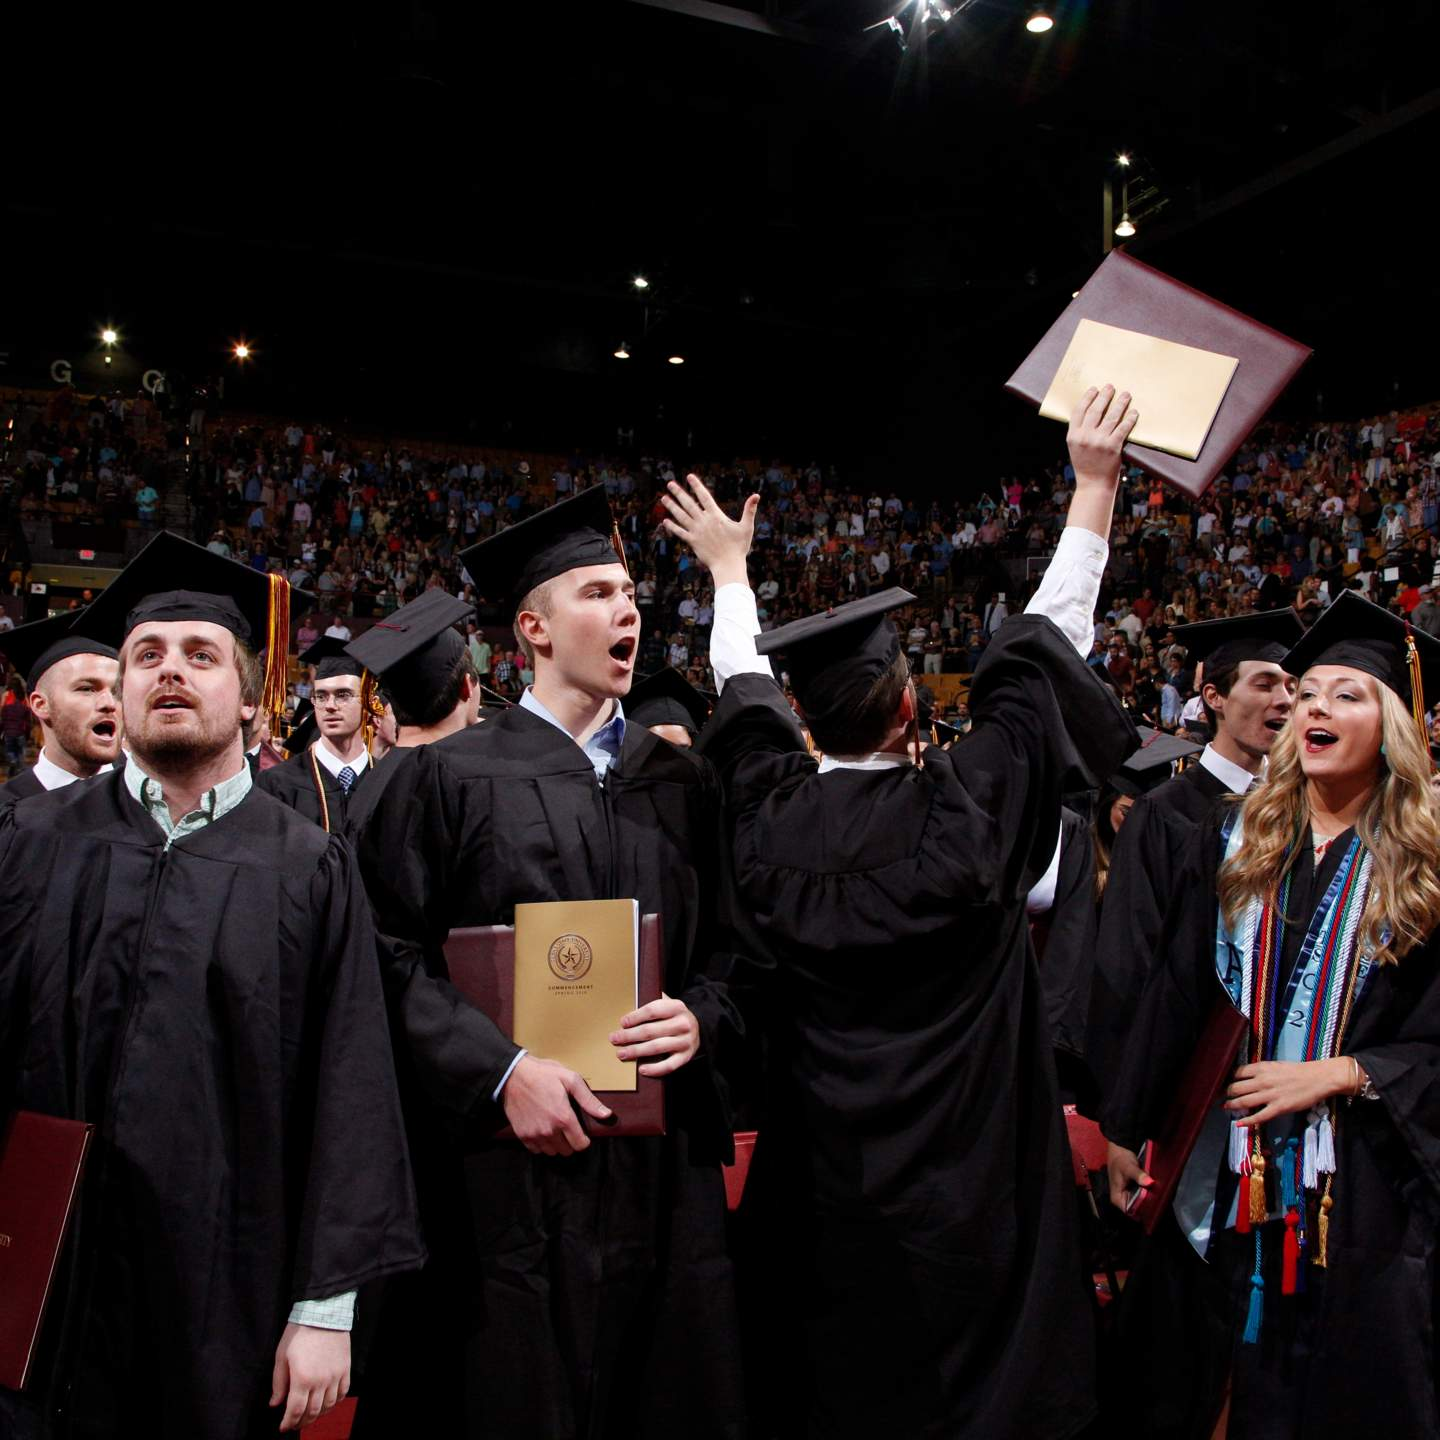 Newly conferred graduates celebrate at the end of a Spring 2016 Texas State University commencement ceremony.